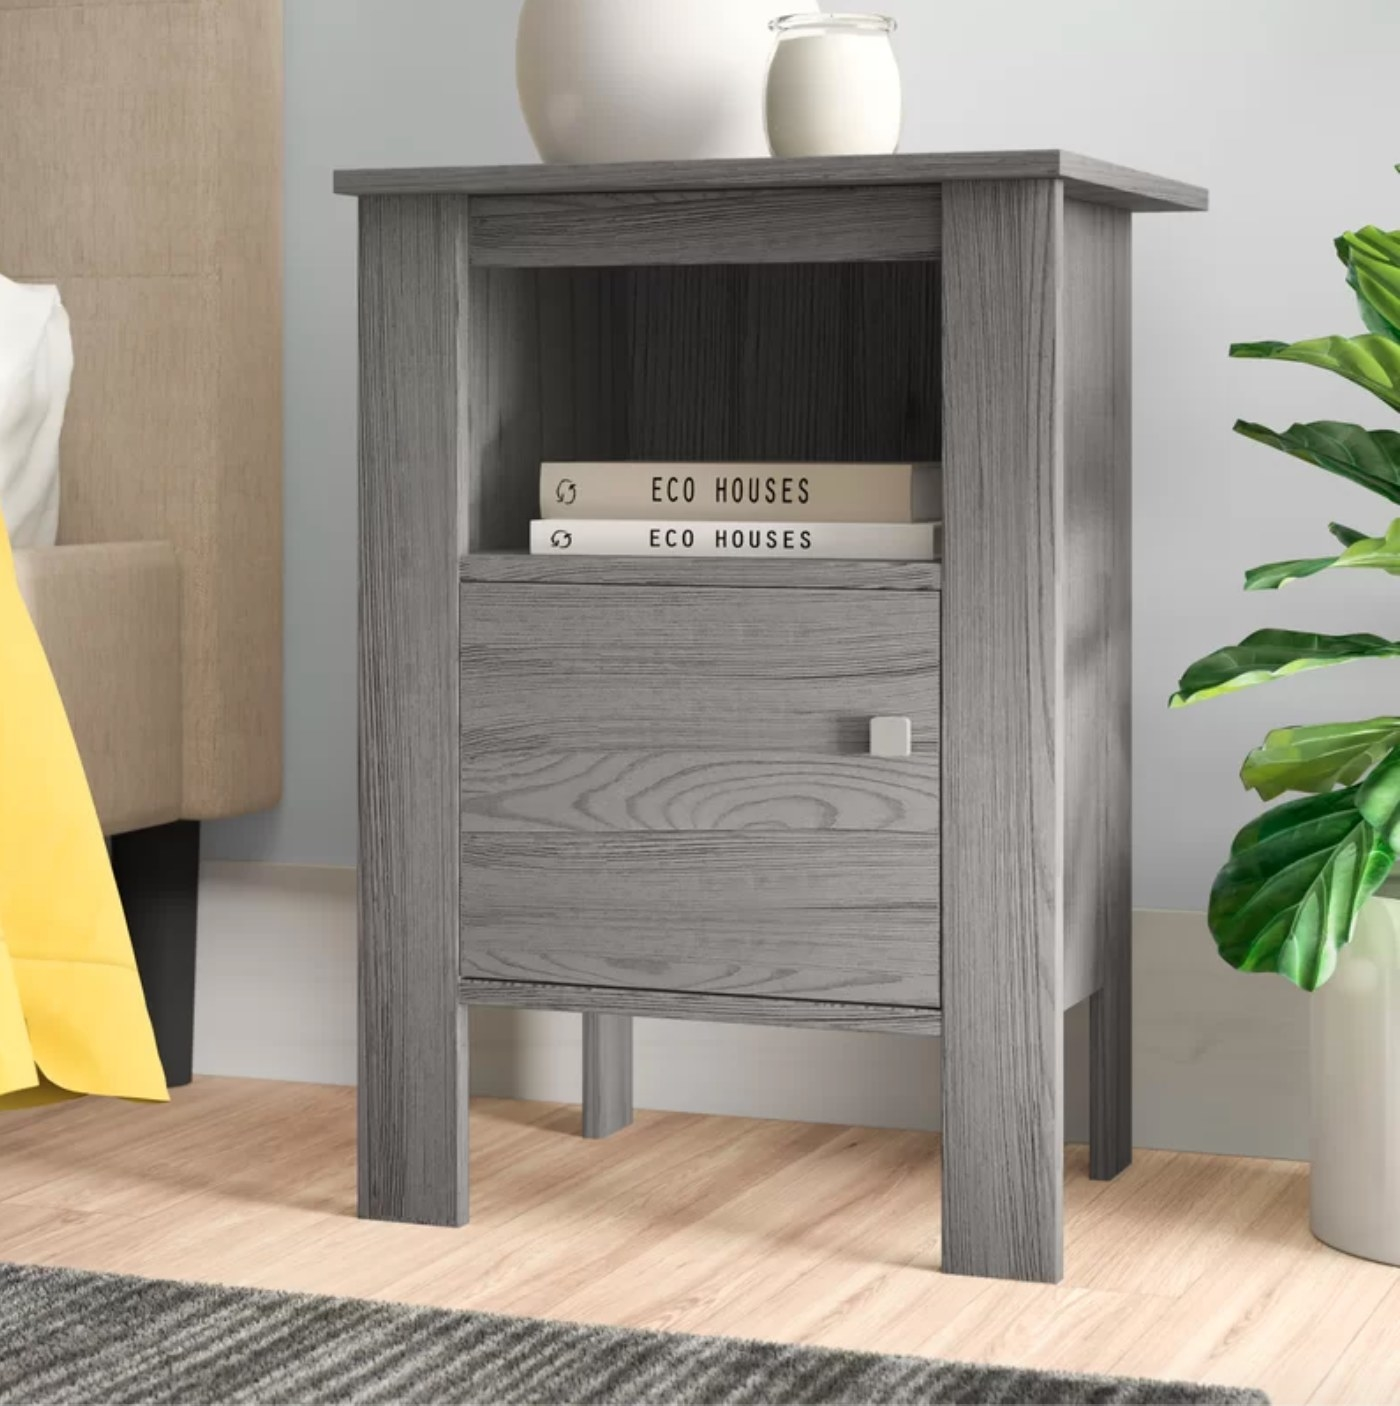 The nightstand in gray